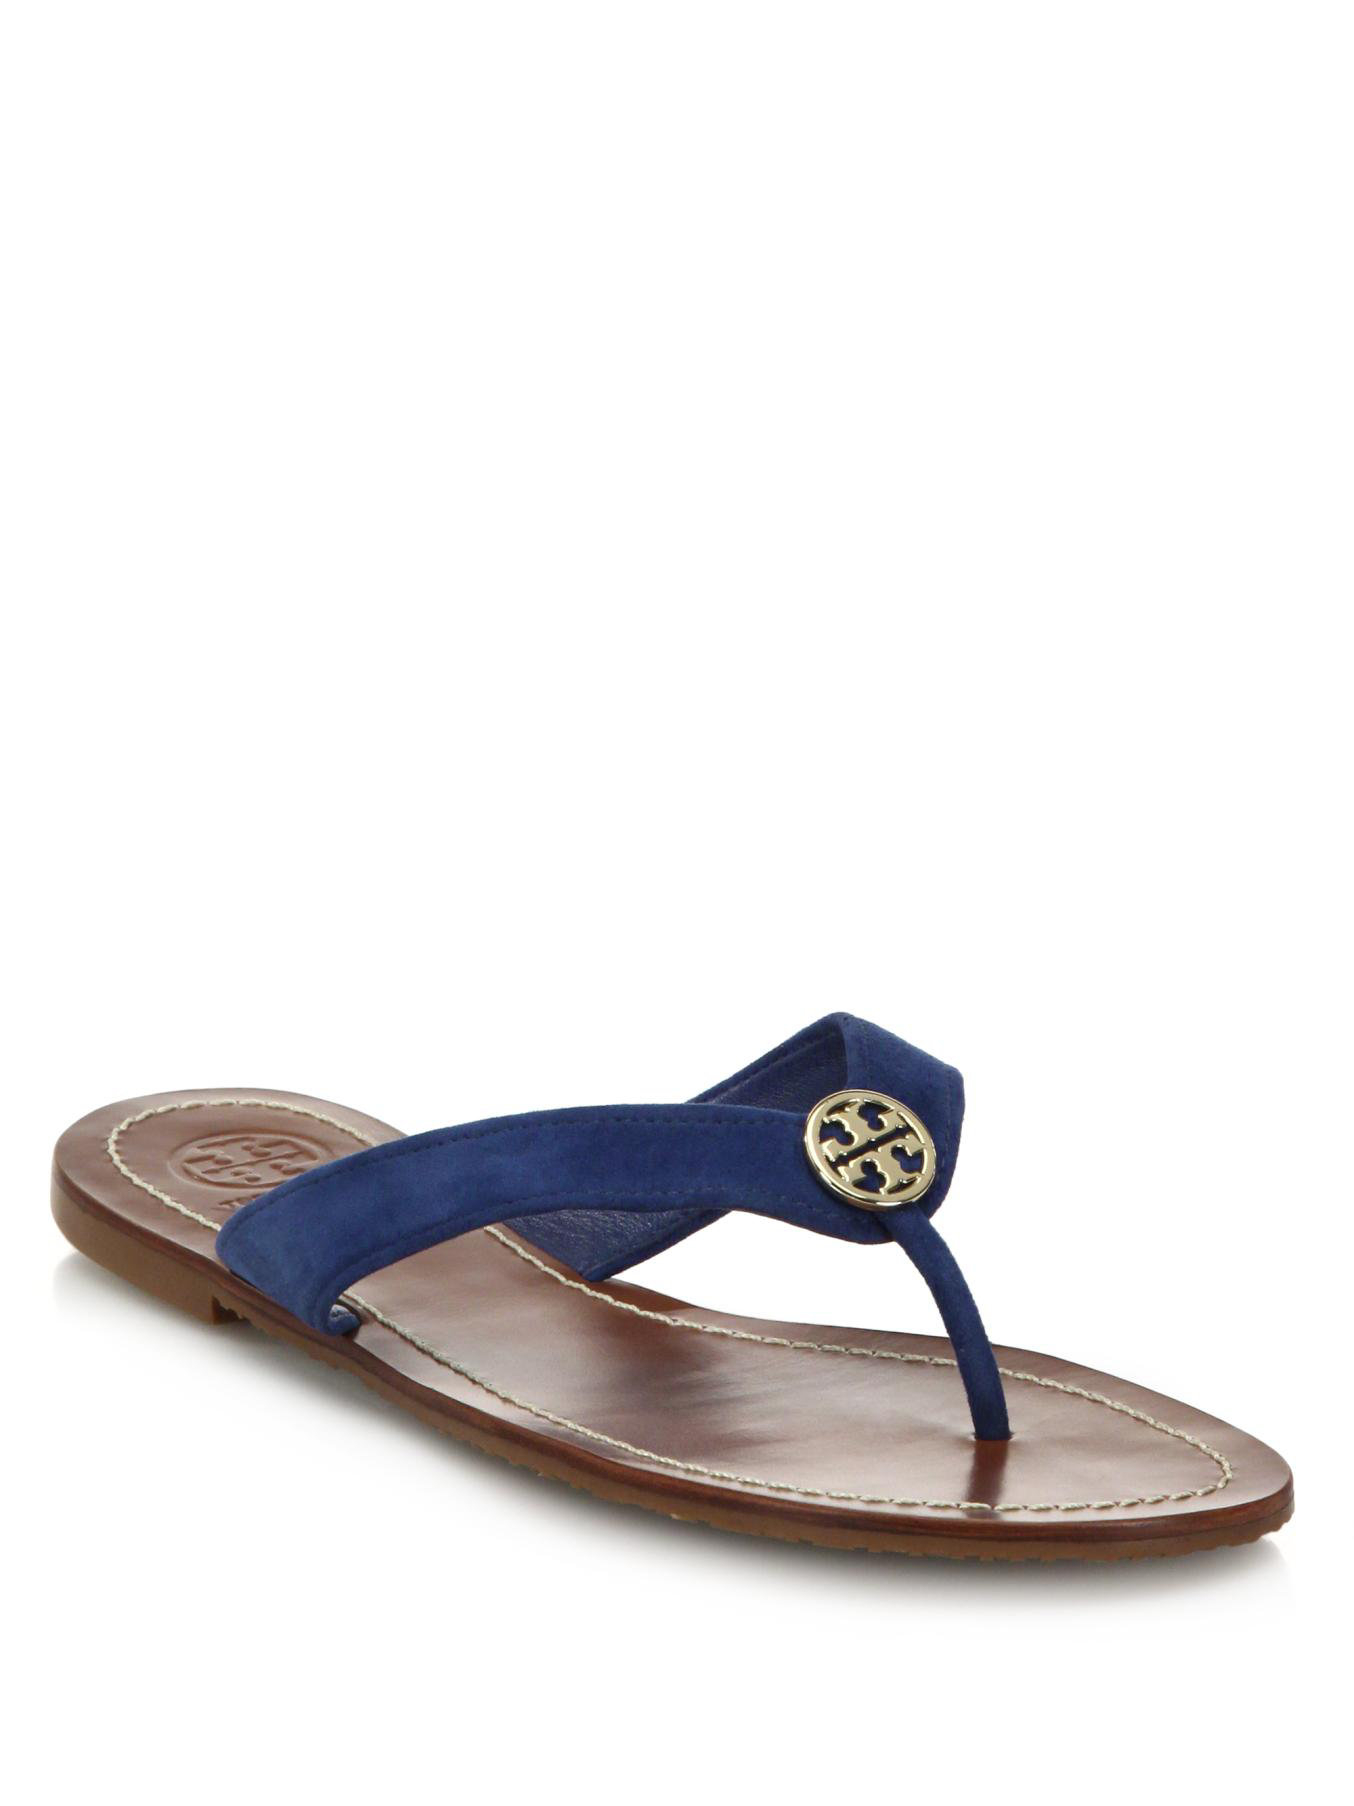 748e642d2 Lyst - Tory Burch Thora Suede Logo Thong Sandals in Blue